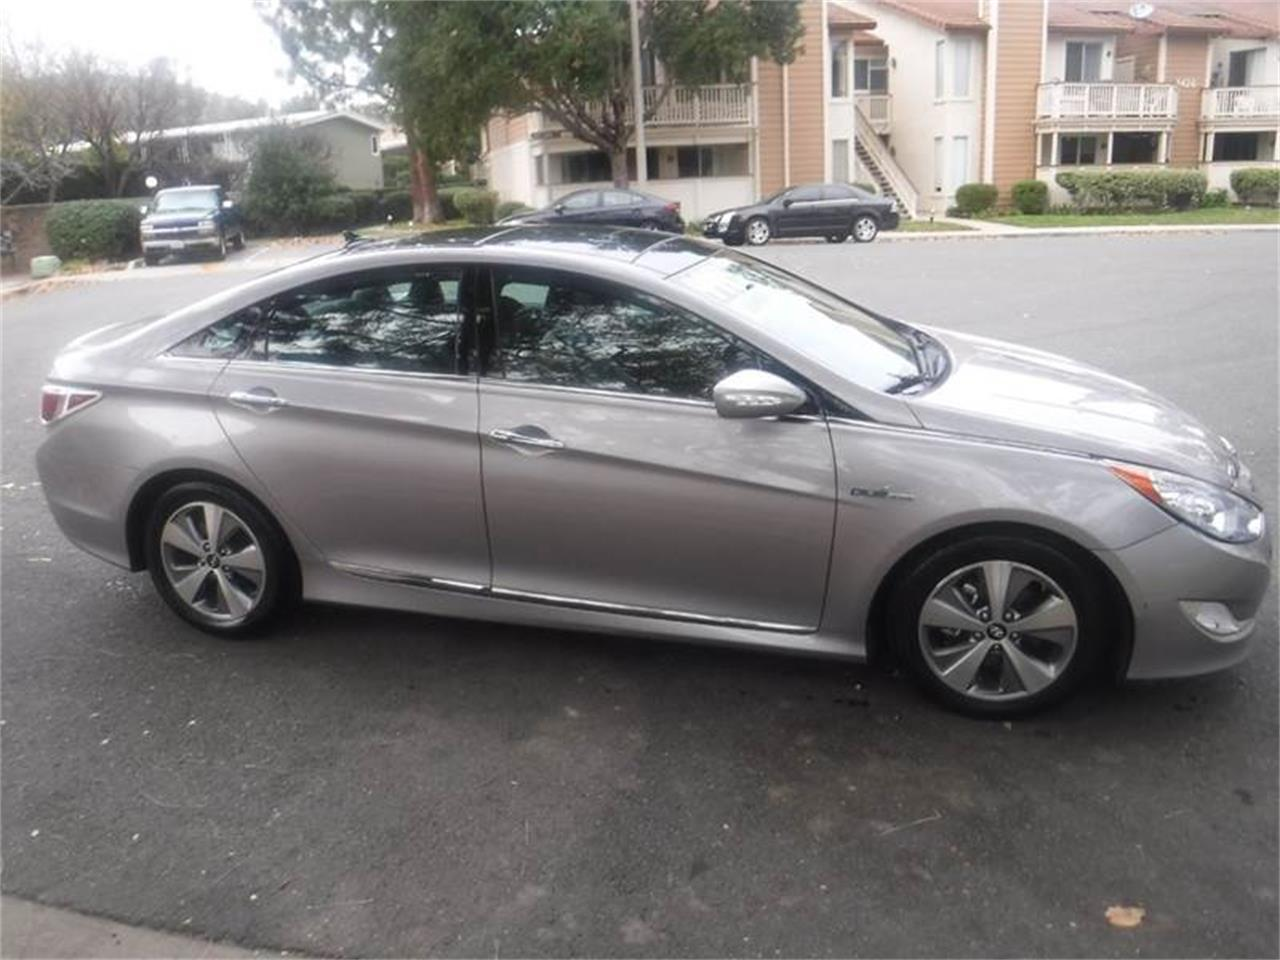 Large Picture of '11 Sonata - $9,995.00 Offered by Allen Motors, Inc. - MOBC